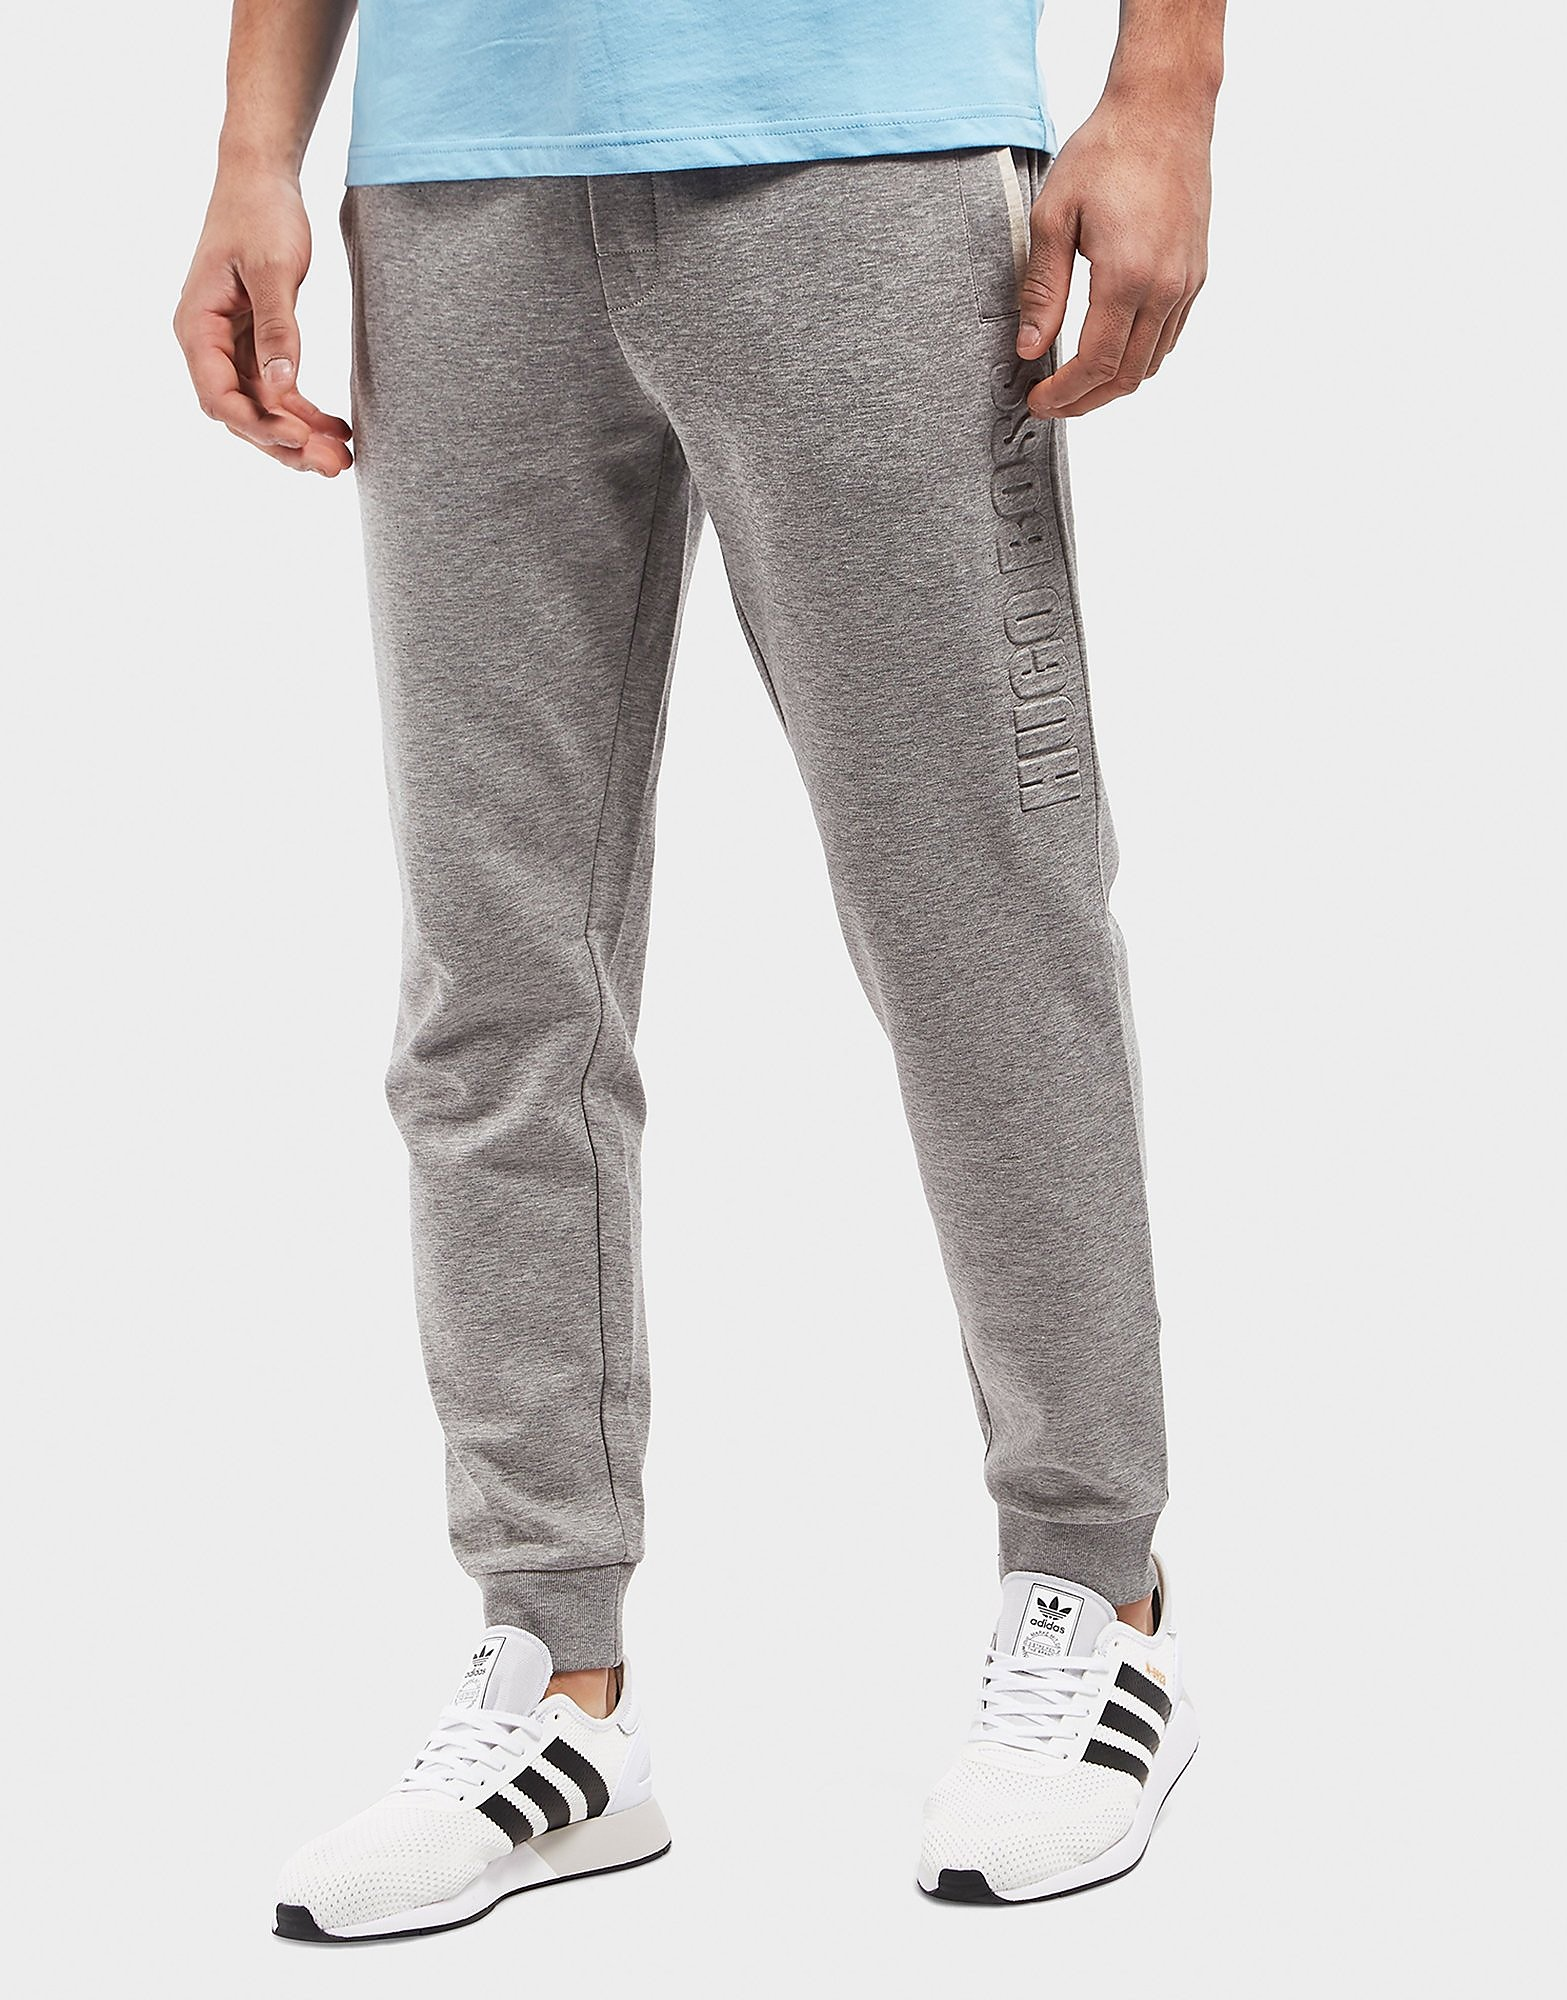 BOSS Embossed Cuffed Track Pants